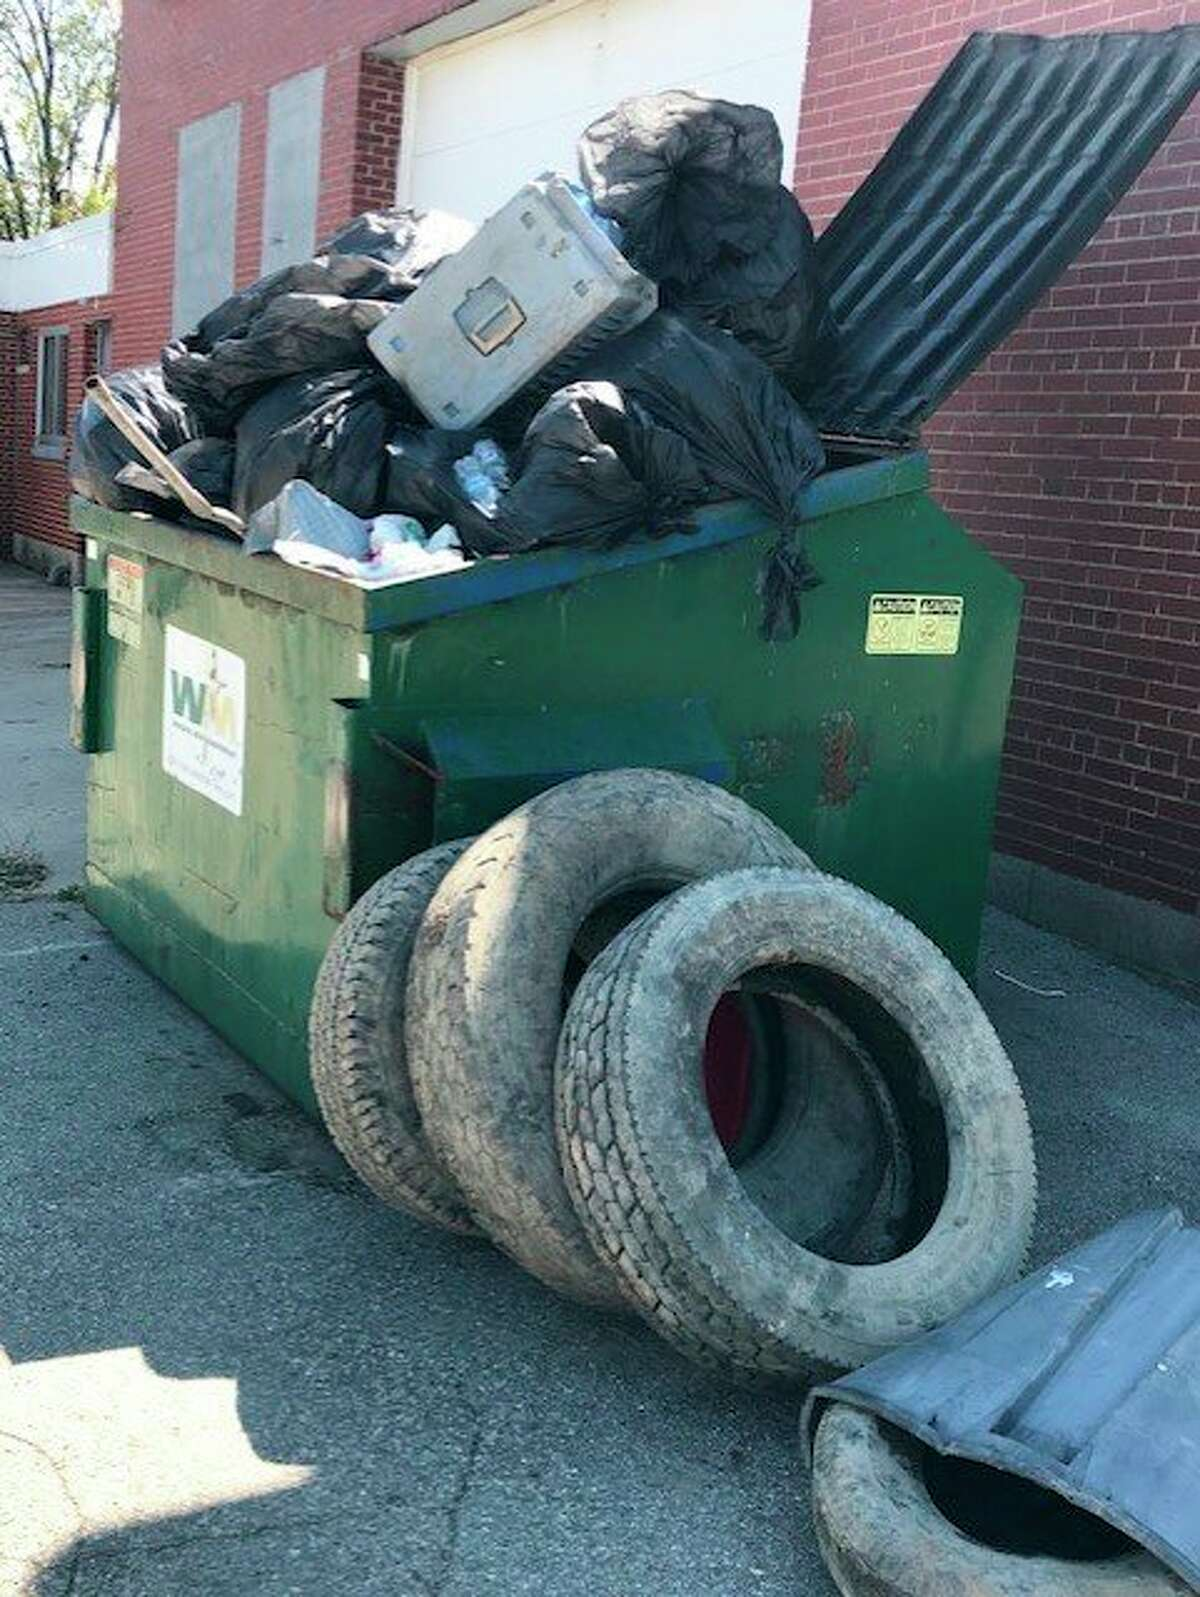 A dumpster is overloaded with trash students collected during the clean-up event. (Courtesy Photo)